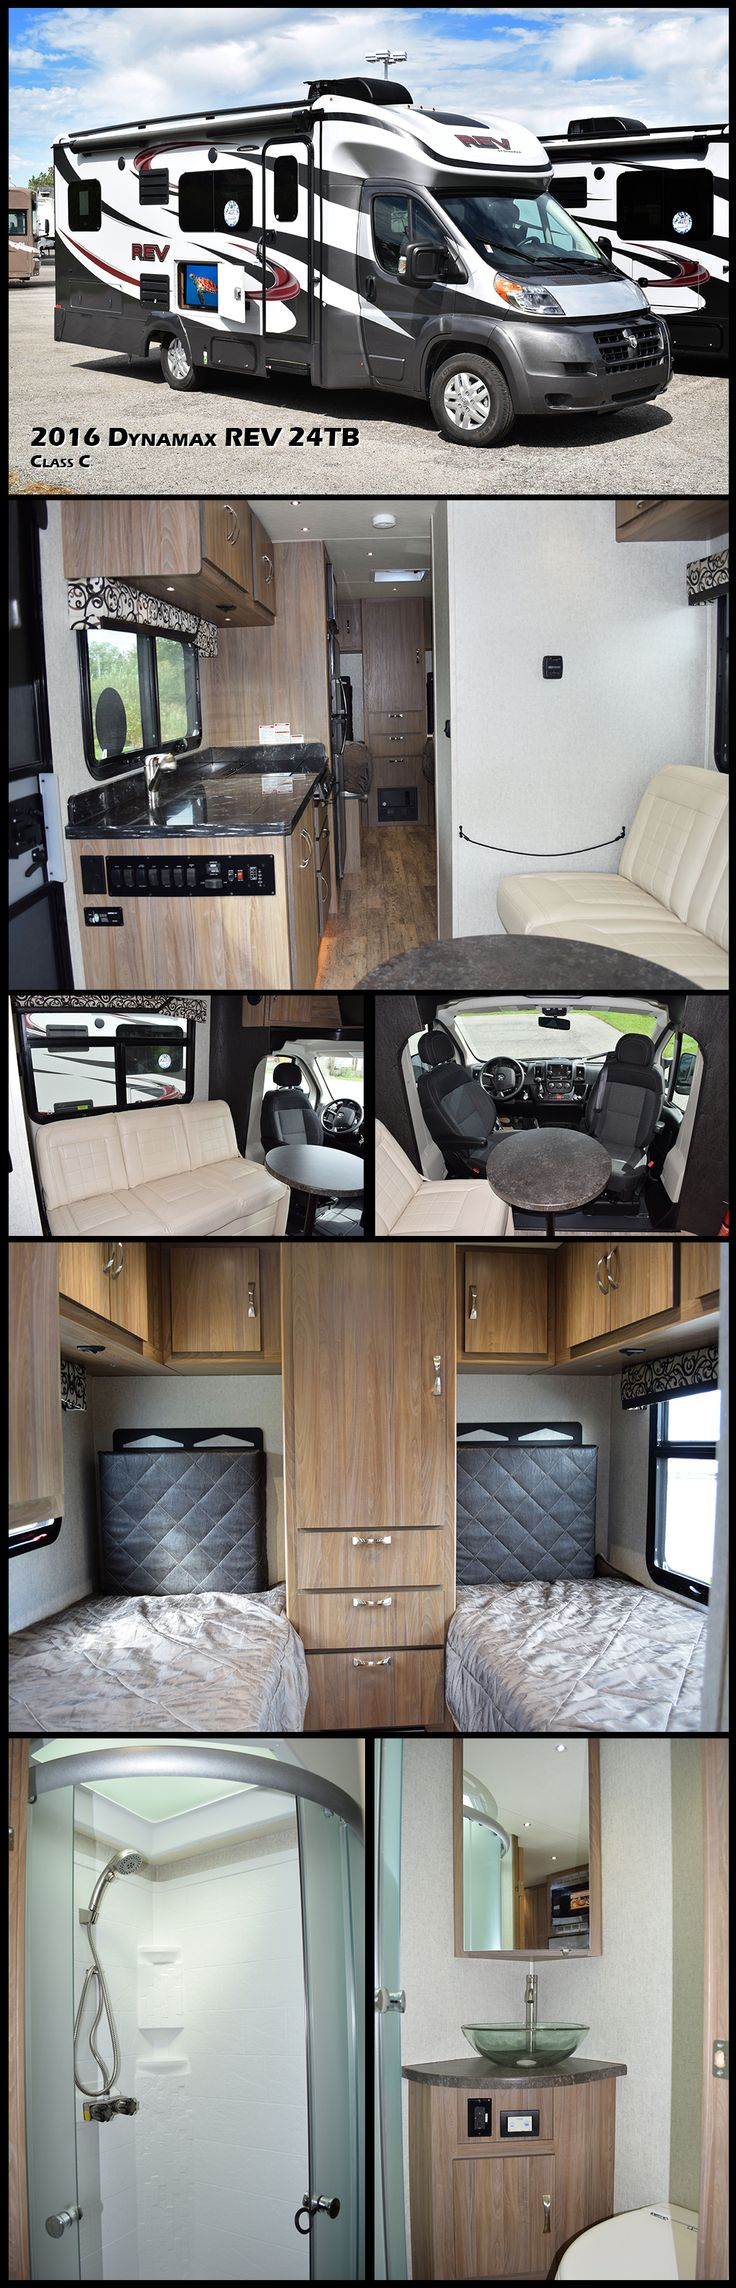 The 2016 DYNAMAX REV 24TB is a do more, carry more, enjoy more Class C motorhome. Imagine everything you love about your SUV and now add a place to relax, to cook and to sleep. This model contains a private bathroom with a shower, sink and a toilet. Cooking is made easy with a fully stocked kitchen that contains a stove, microwave, refrigerator and a double sink. In the rear you will find a pair of beds and so much more.